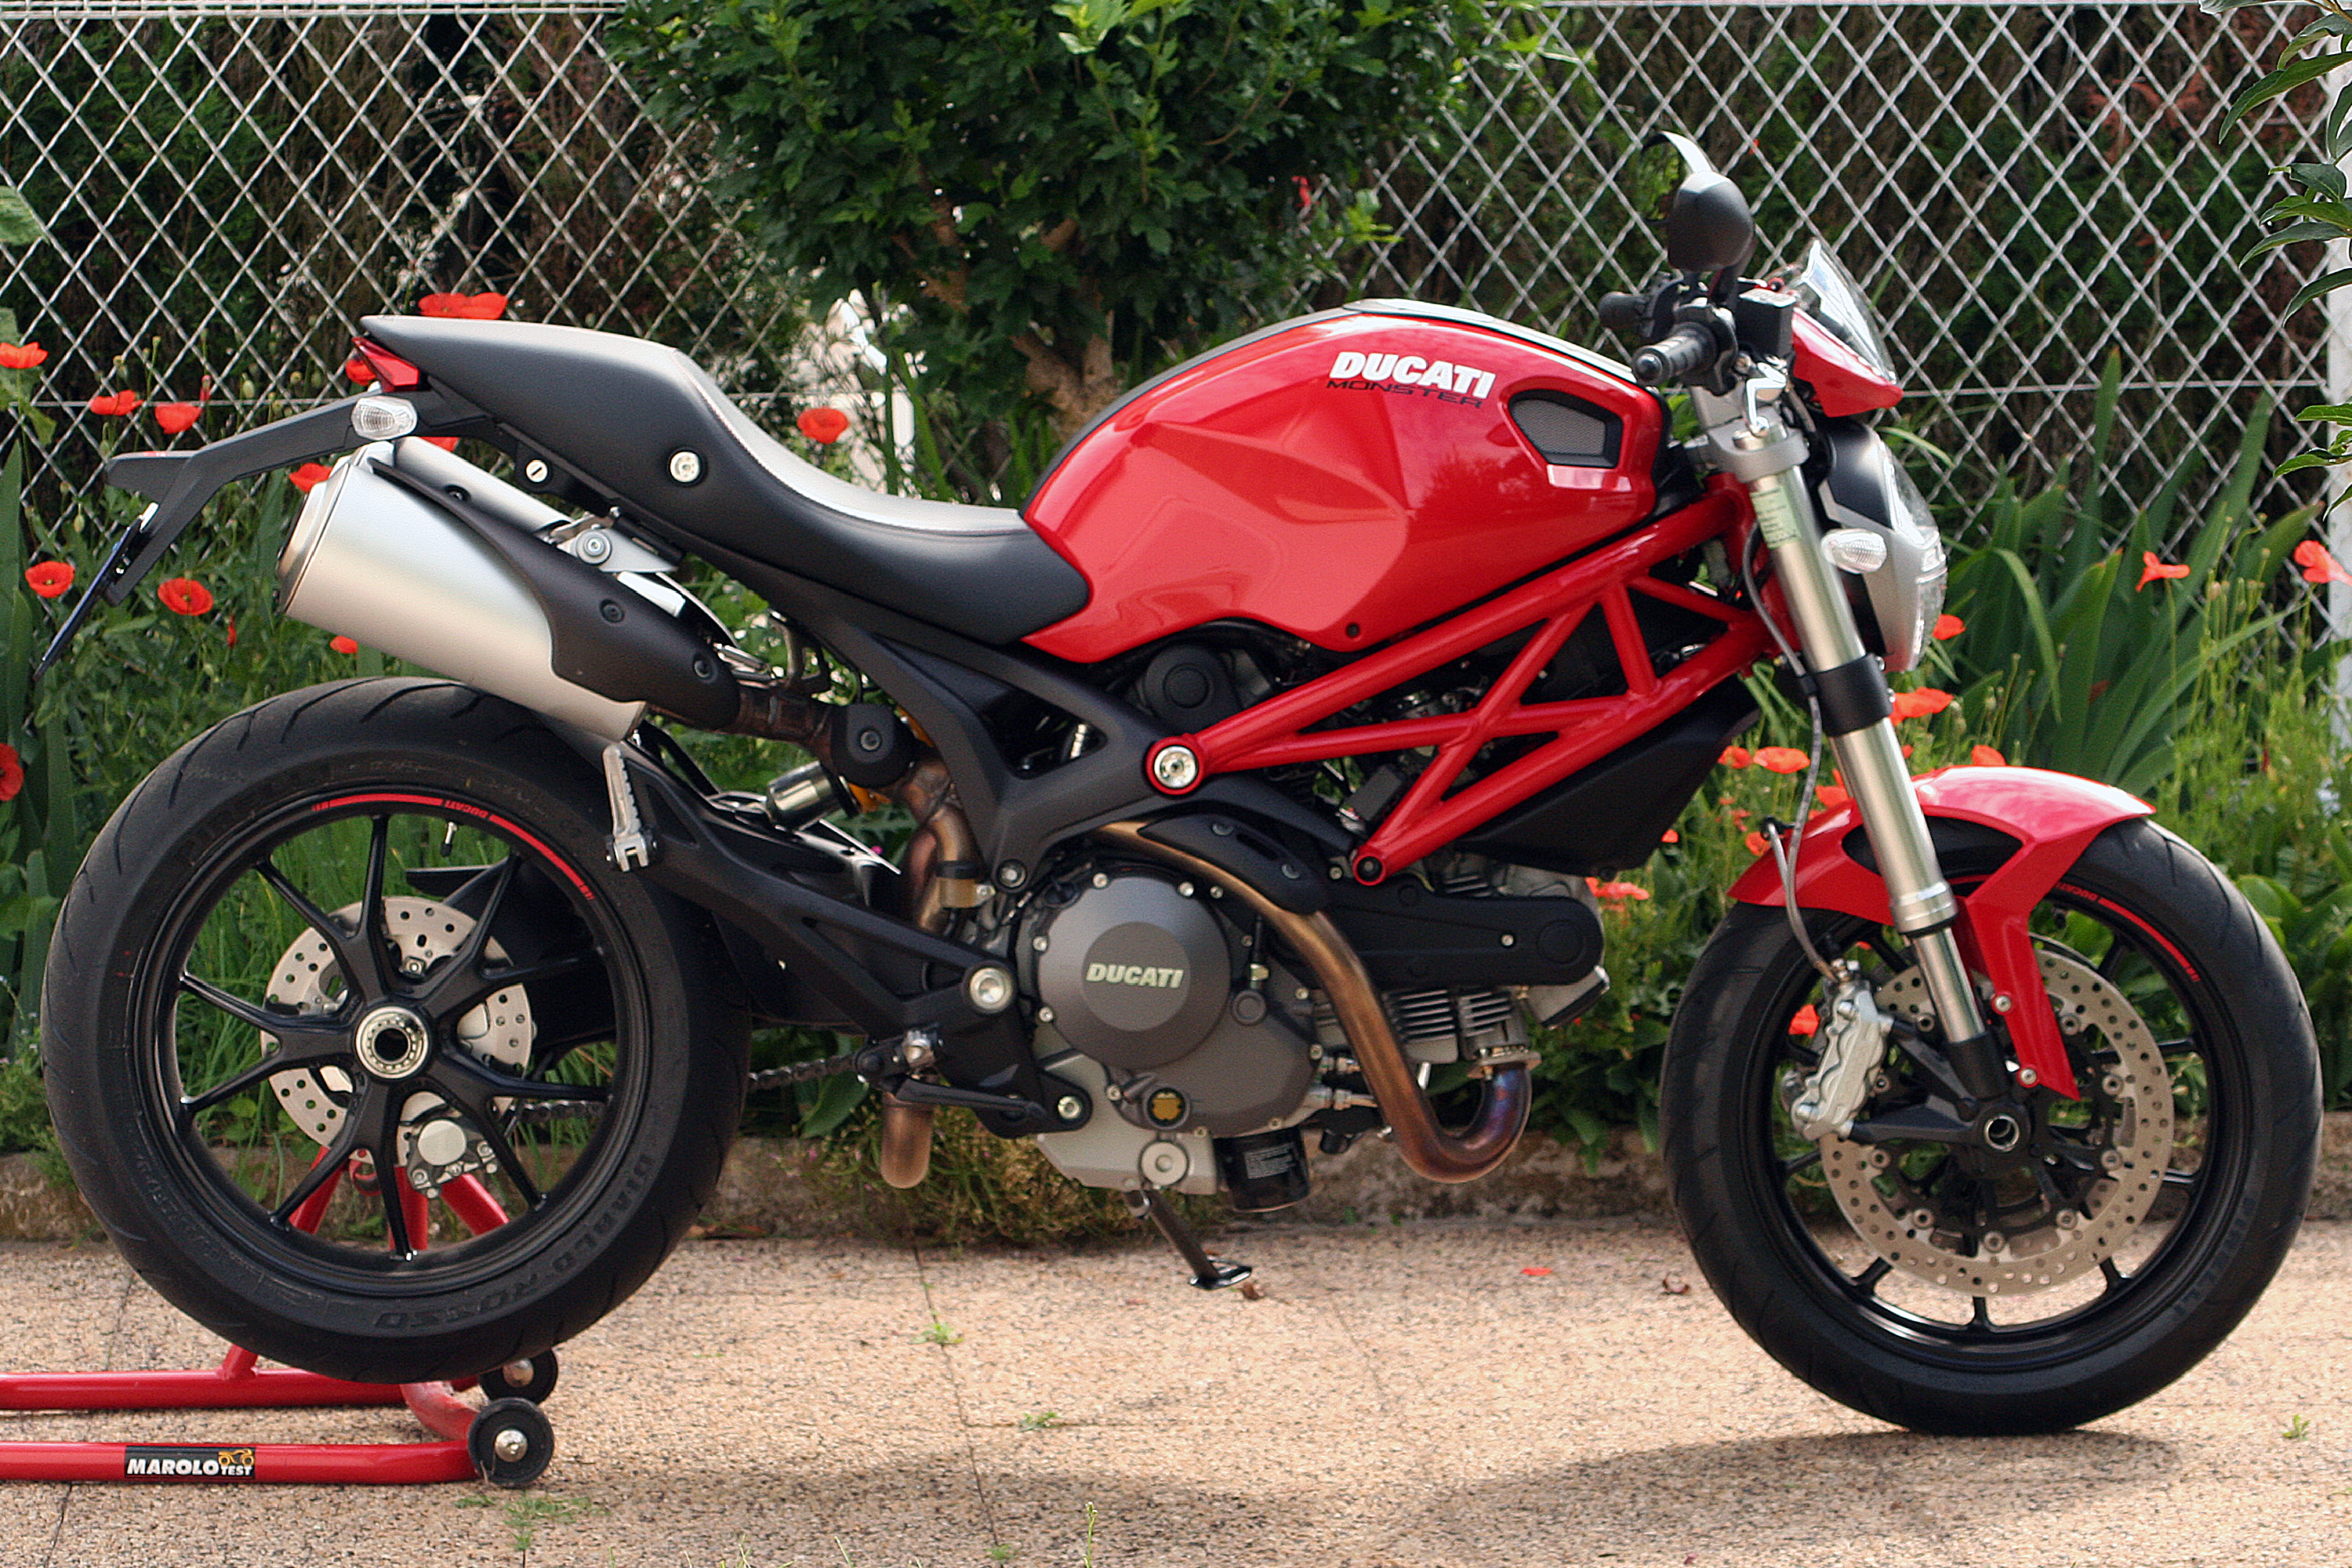 Ducati Monster 620 images #79114